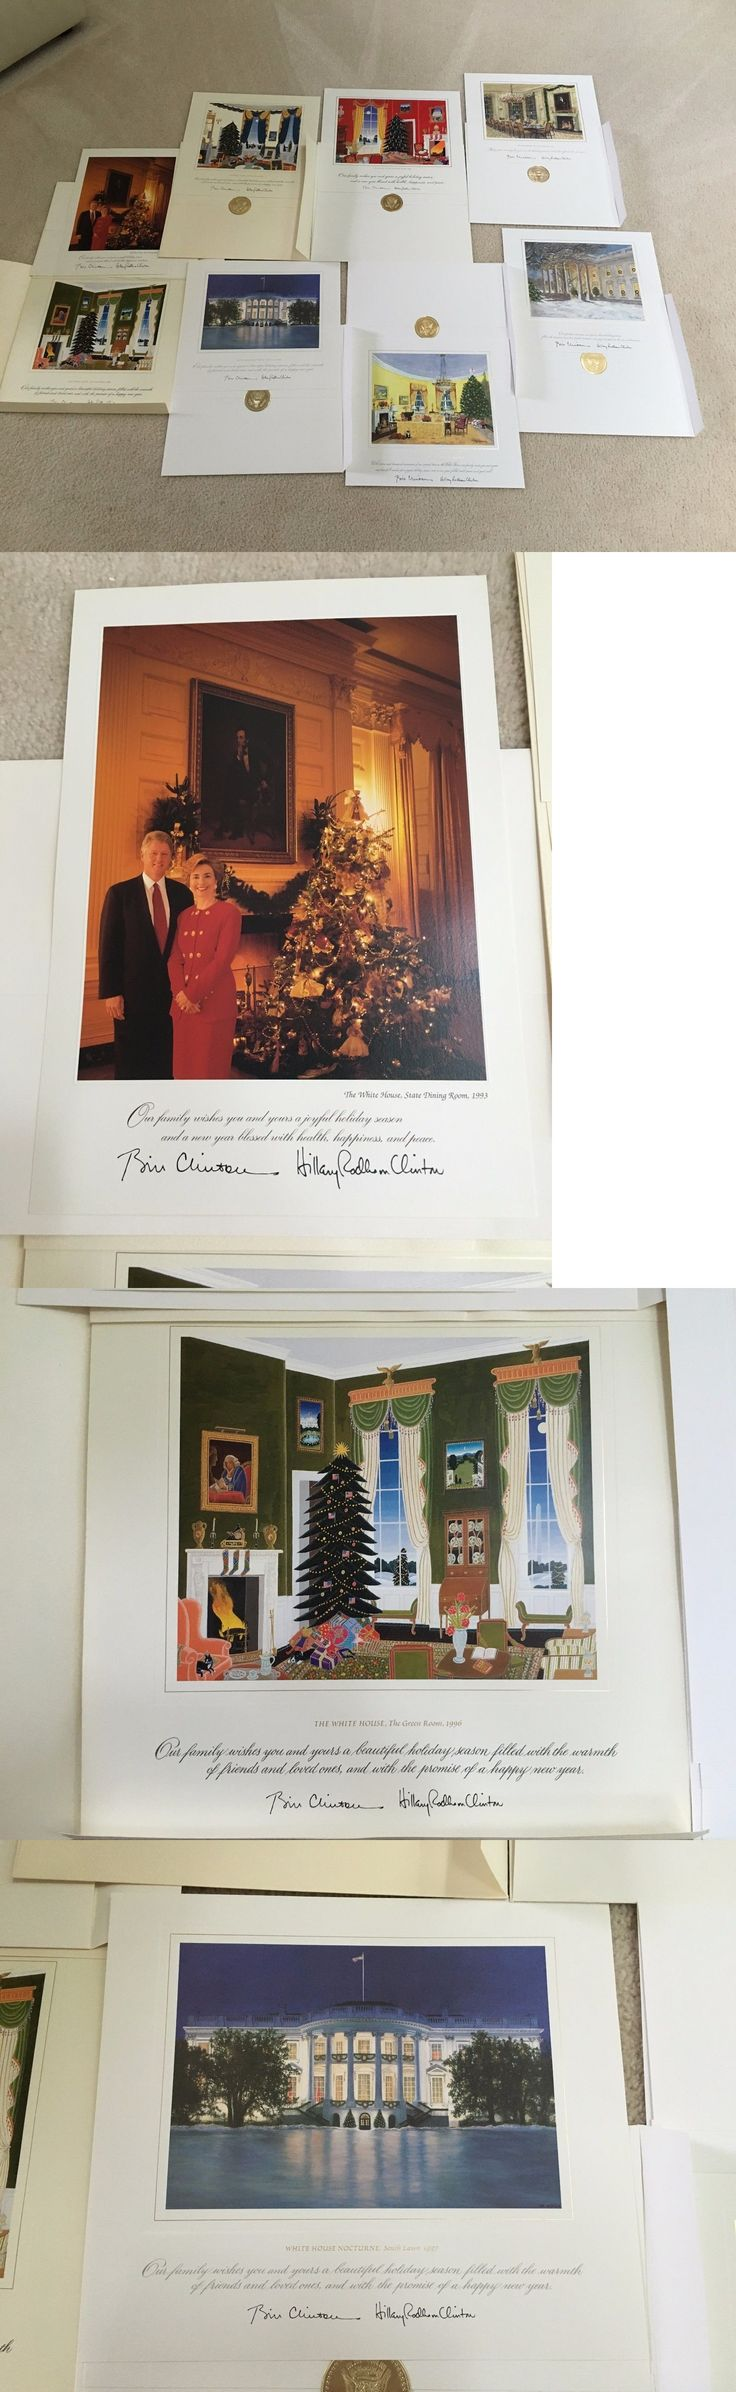 Hillary Clinton: 1993-2000 White House Christmas Large Cards - President Bill And Hillary Clinton -> BUY IT NOW ONLY: $139.95 on eBay!